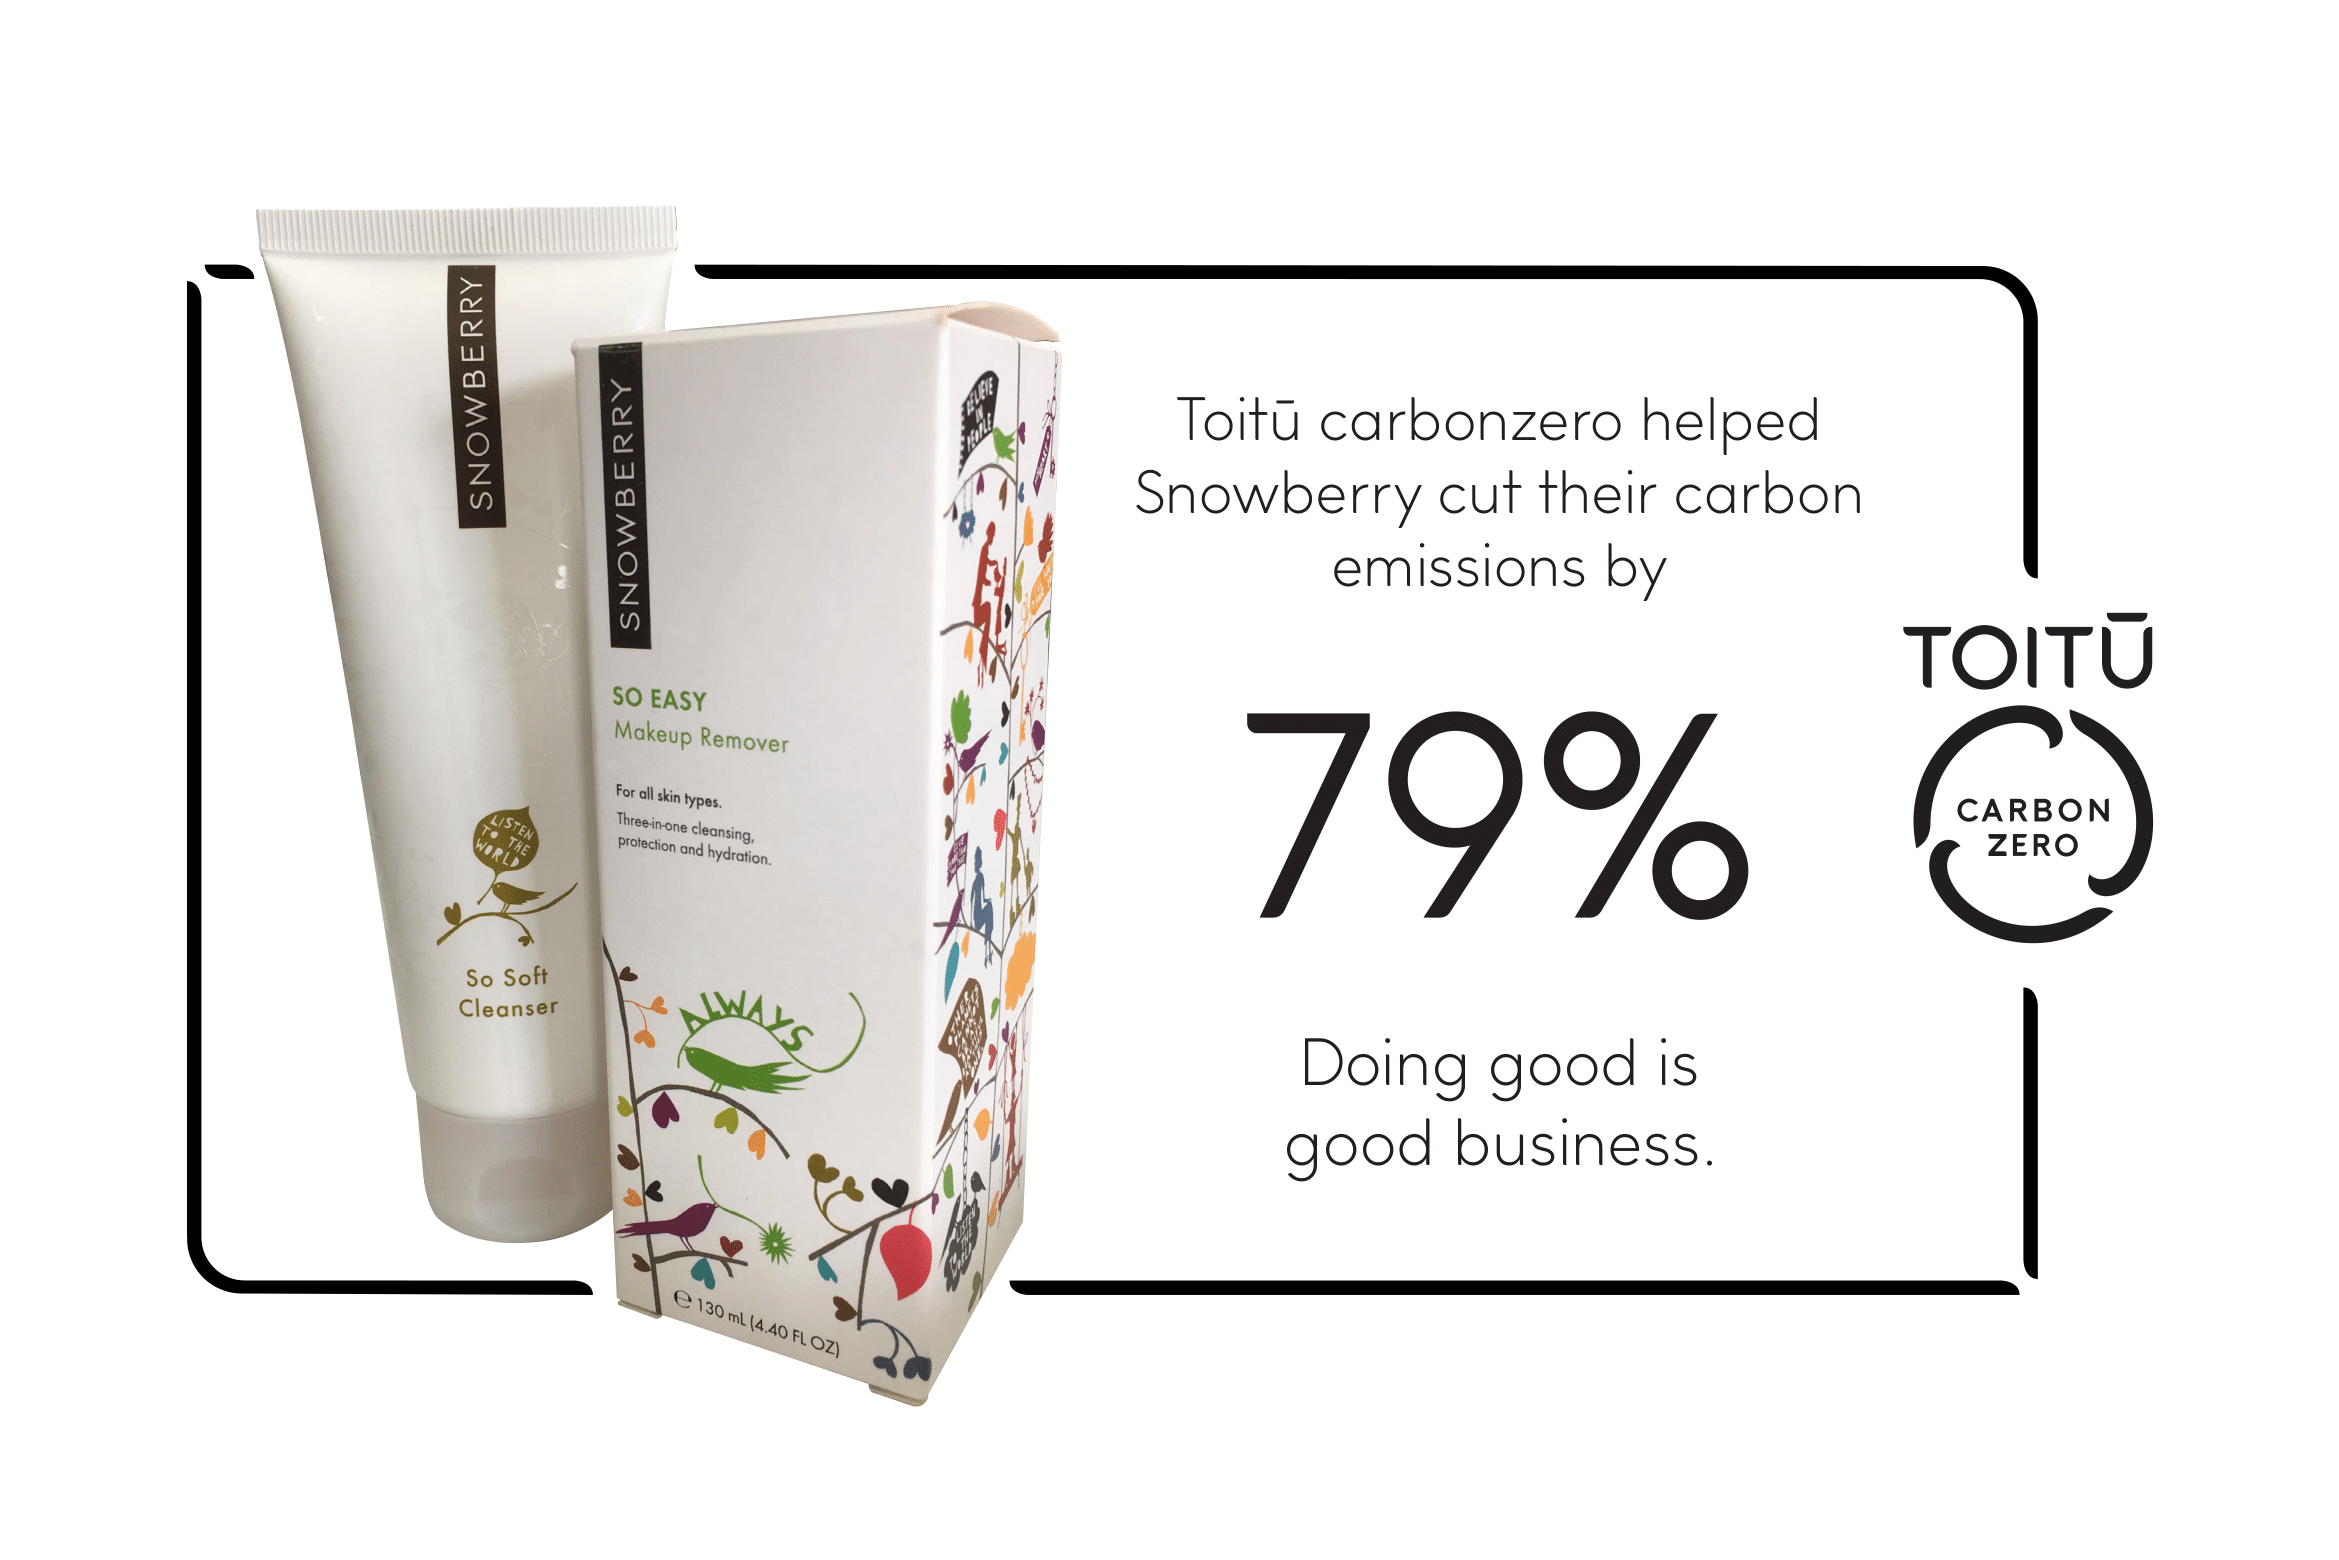 Snowberry cut emissions by 79%